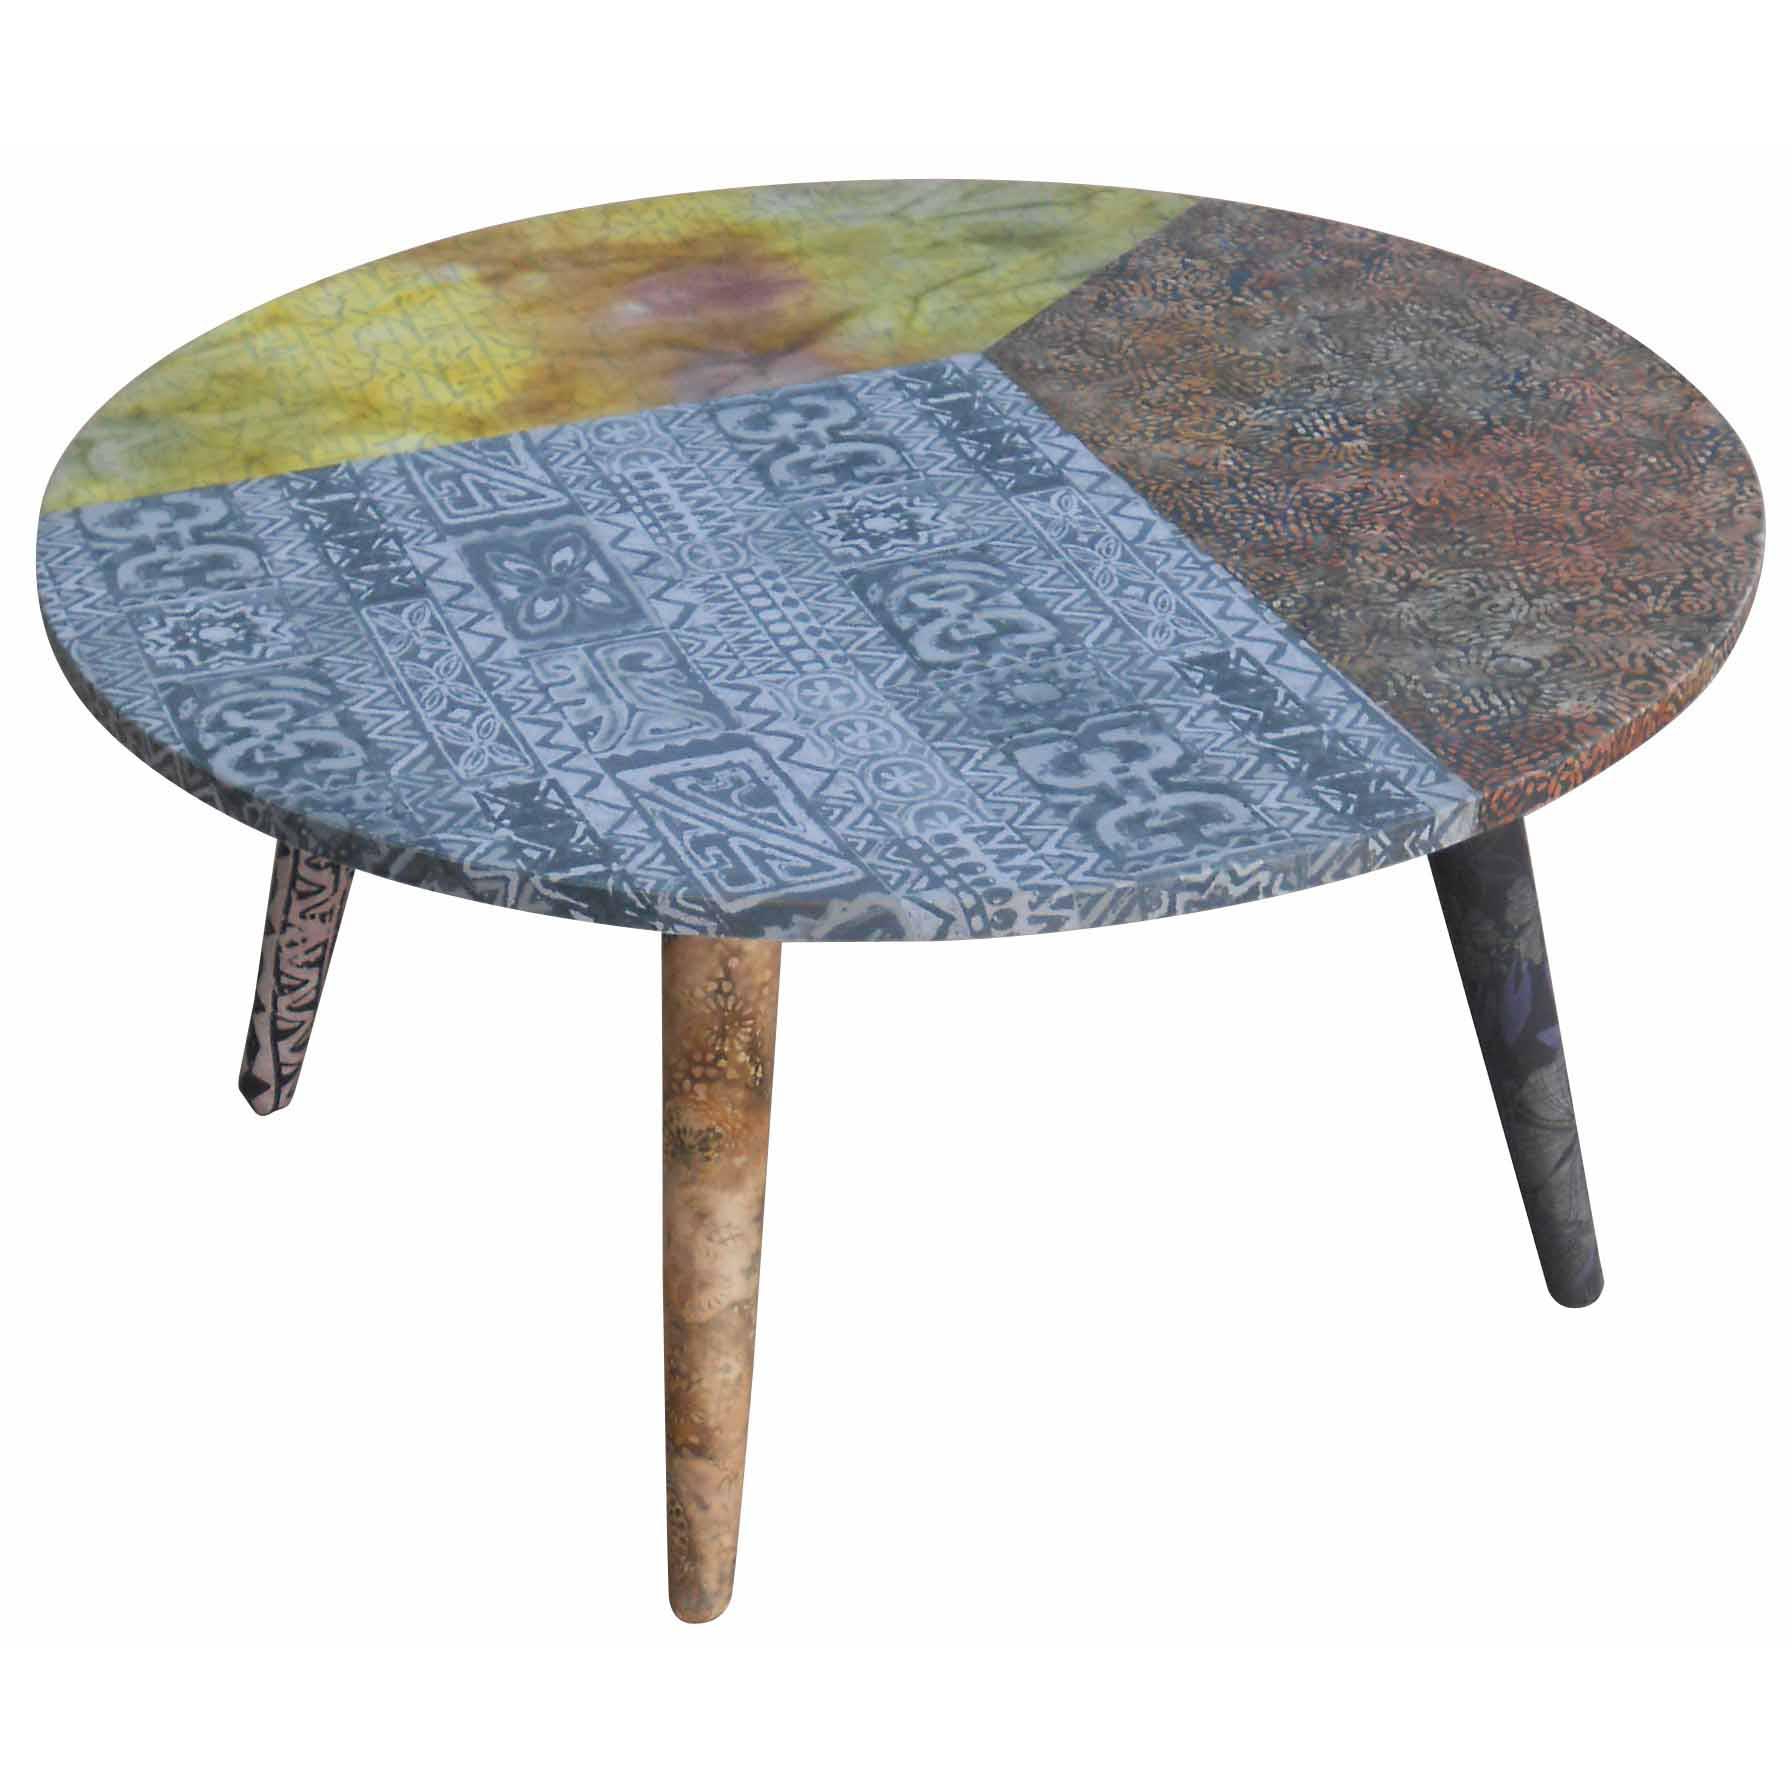 Batik Coffee Tables Inside Favorite Keen Coffee Table, Batik – Boulevard Urban Living (Gallery 8 of 20)